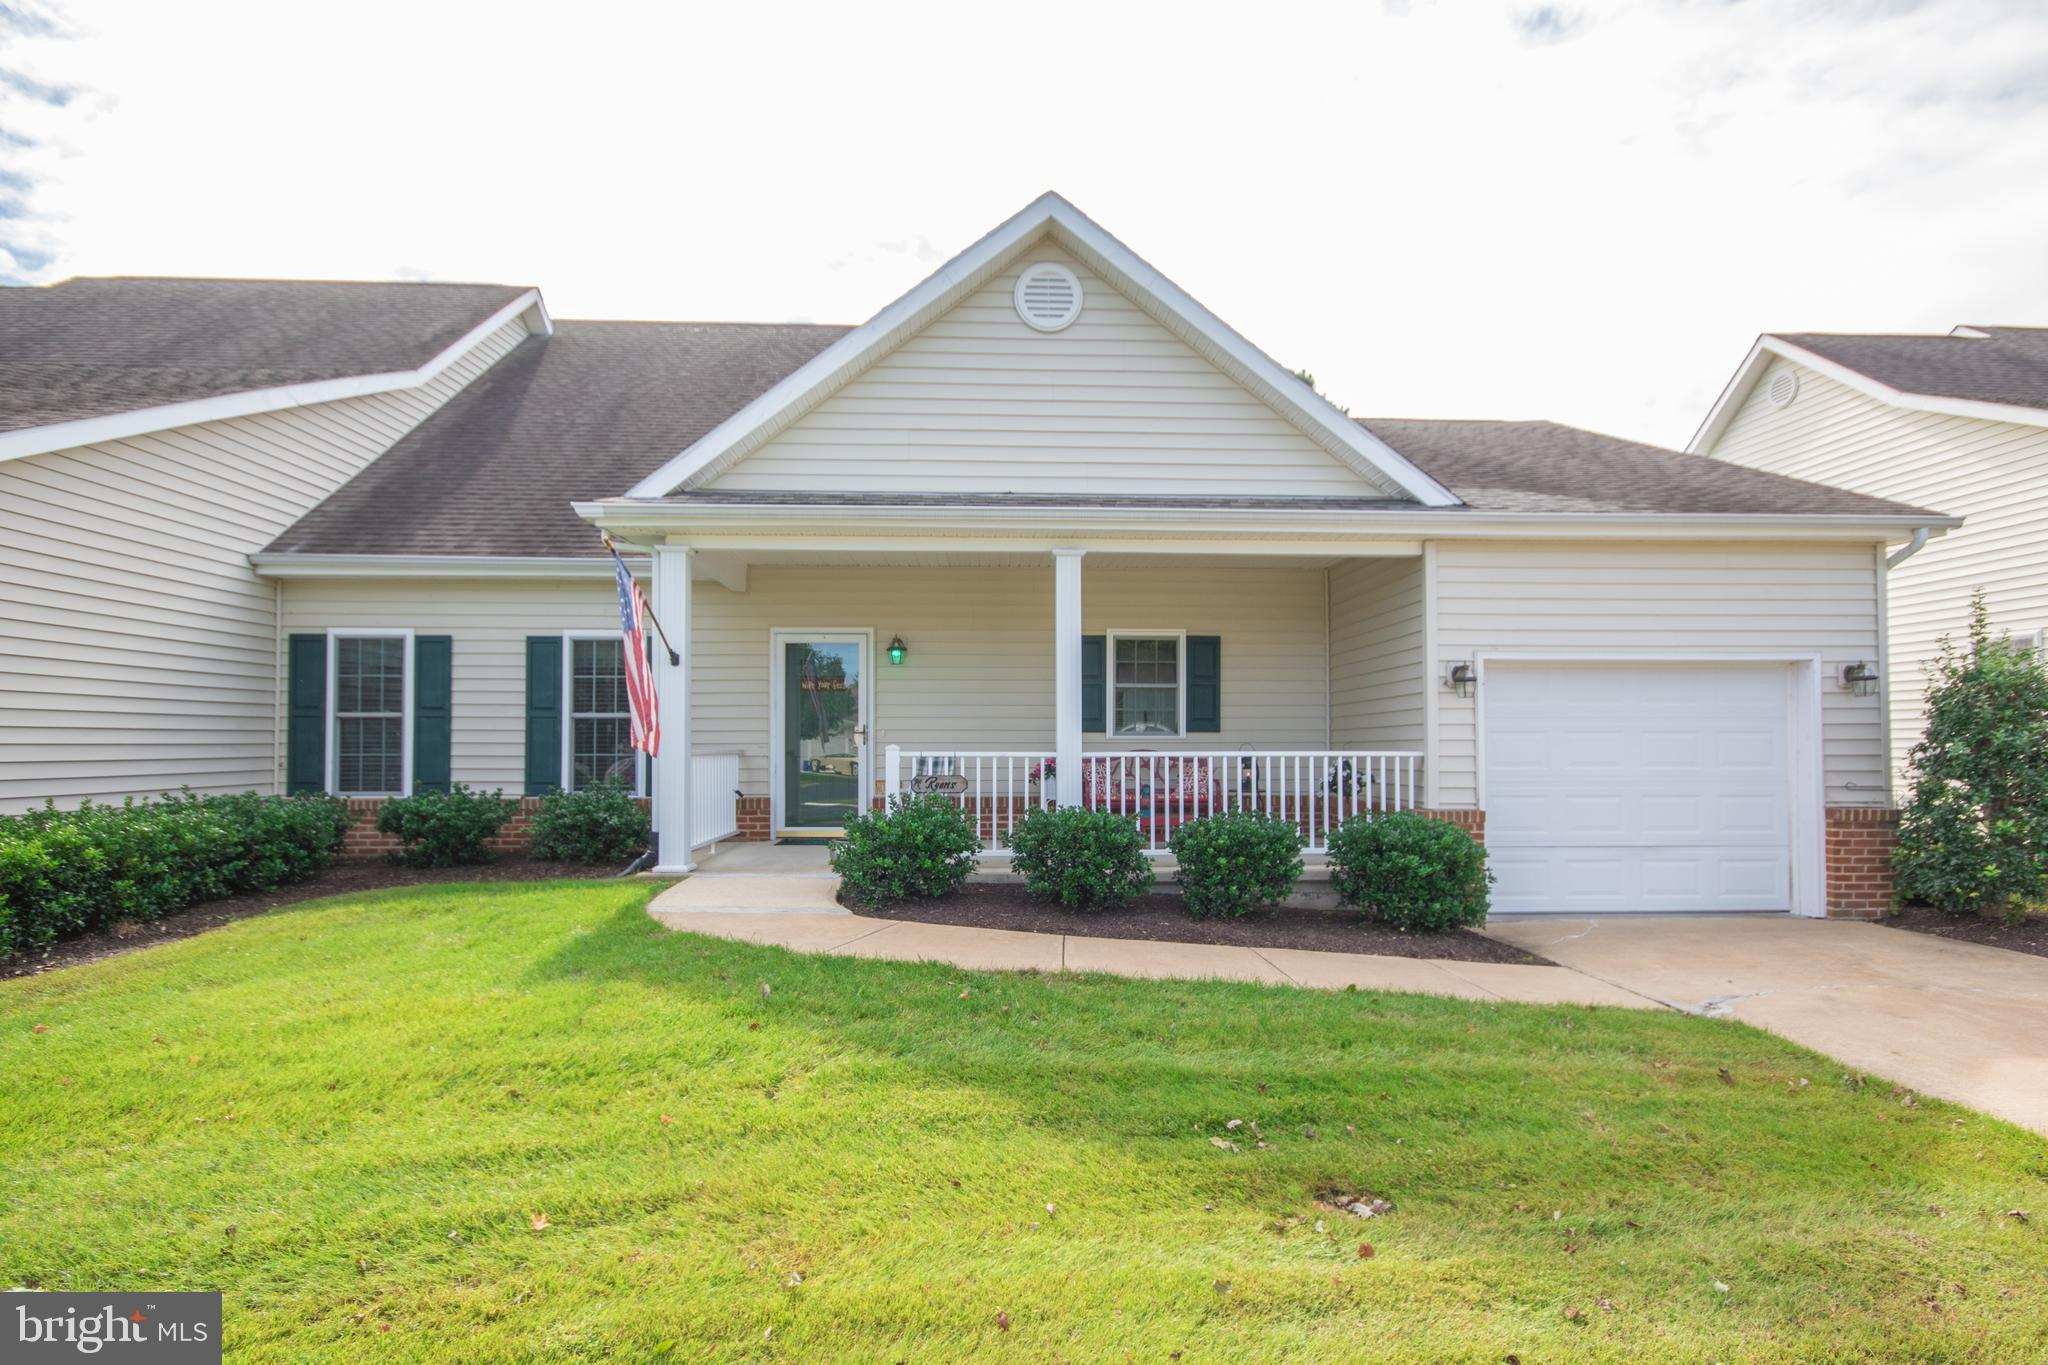 Two bedroom 2 bath cottage located in Mallard Landing.  As you enter through the foyer, to the right